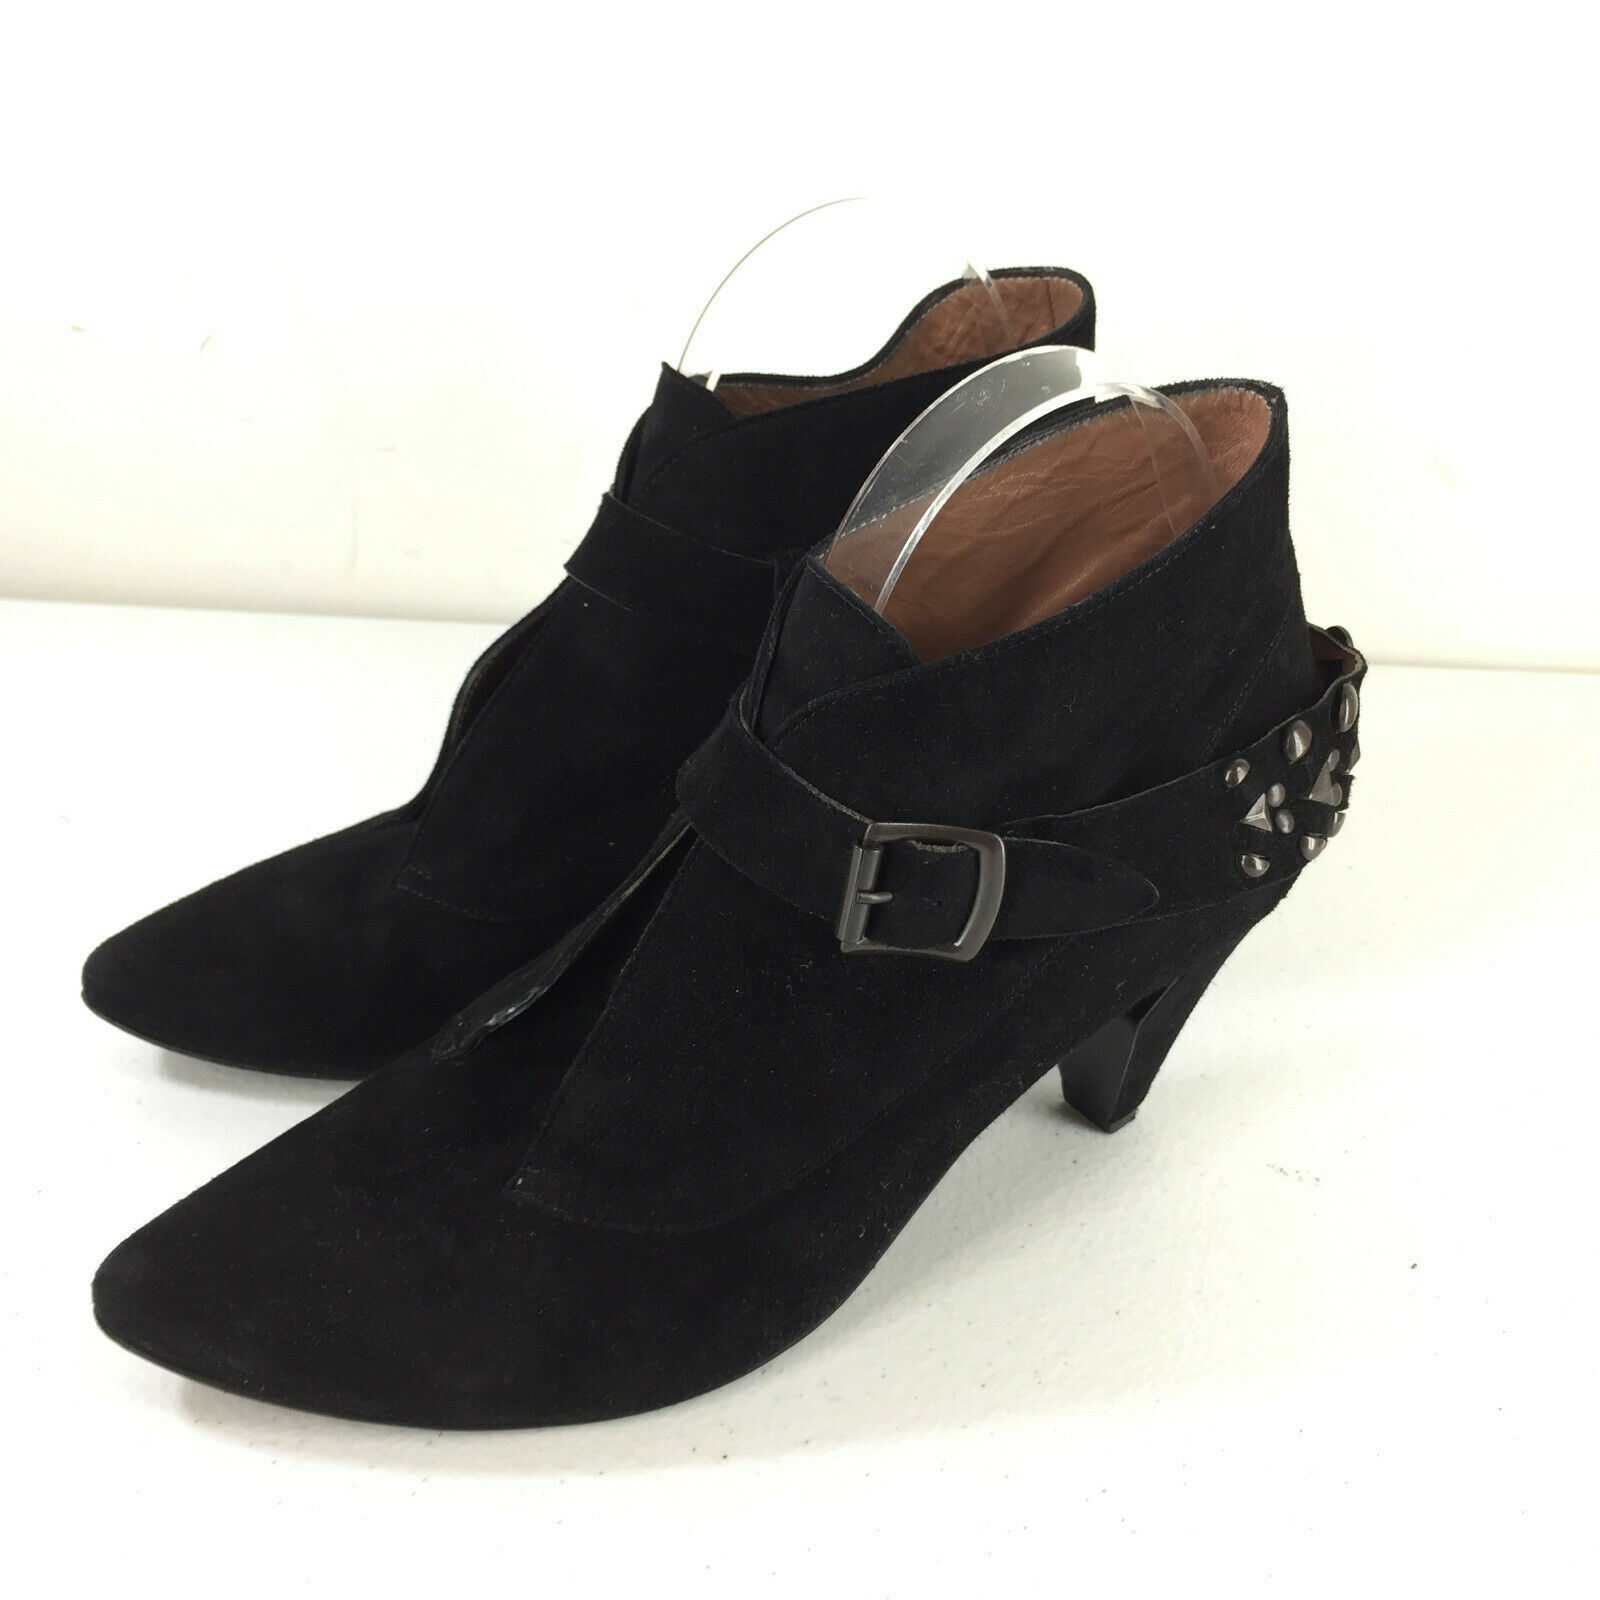 425 Sigerson Morrison 10 Black Suede Booties Studded High Heel Buckle Excellent